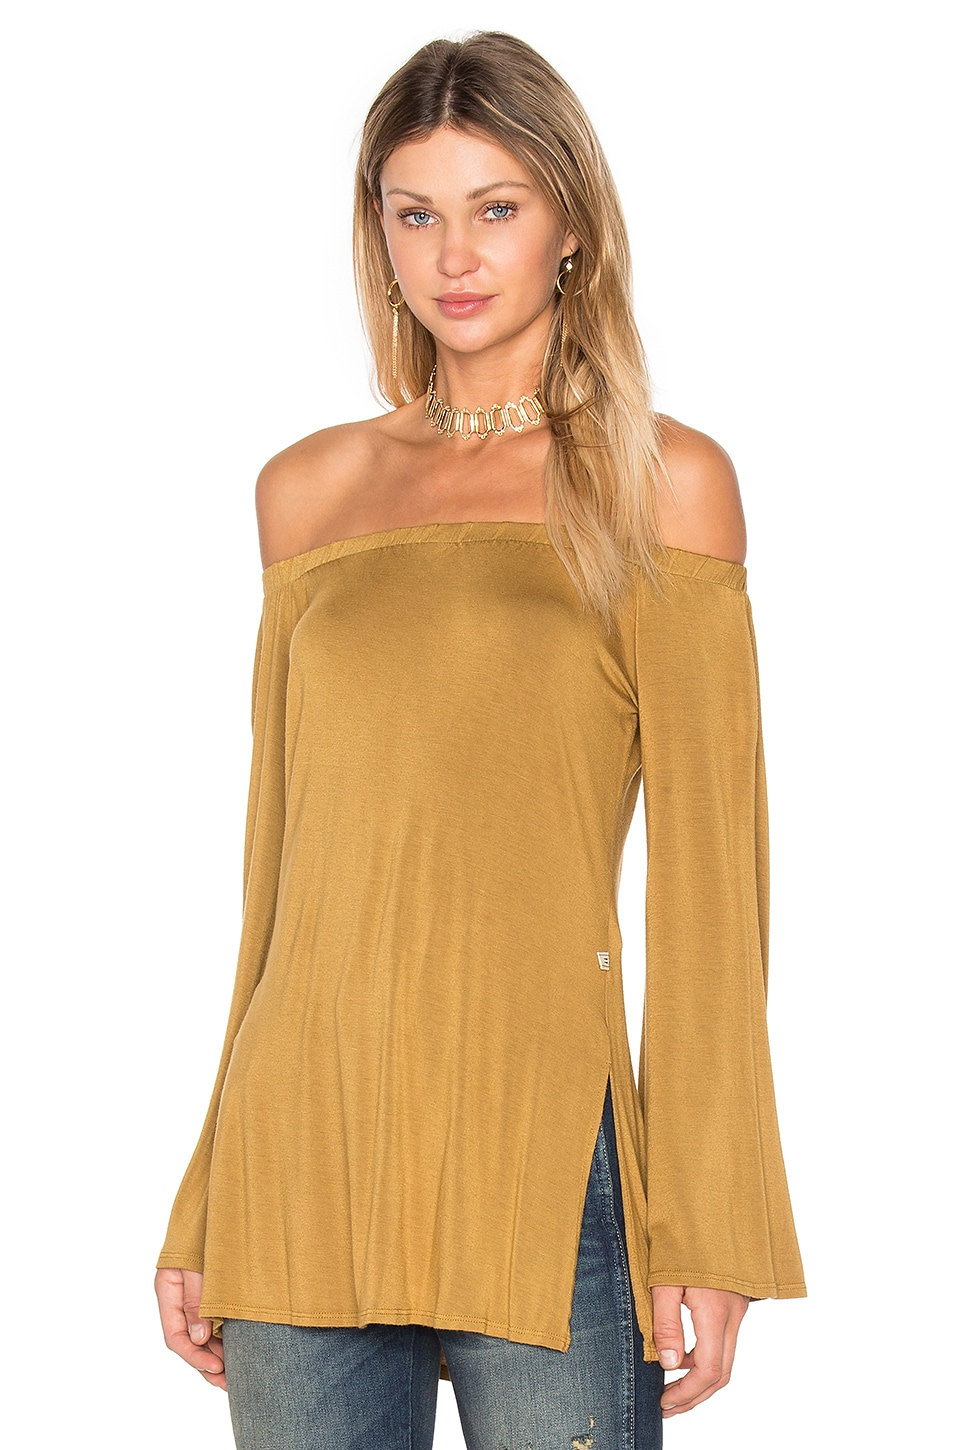 NYTT Off Shoulder Top in Gold